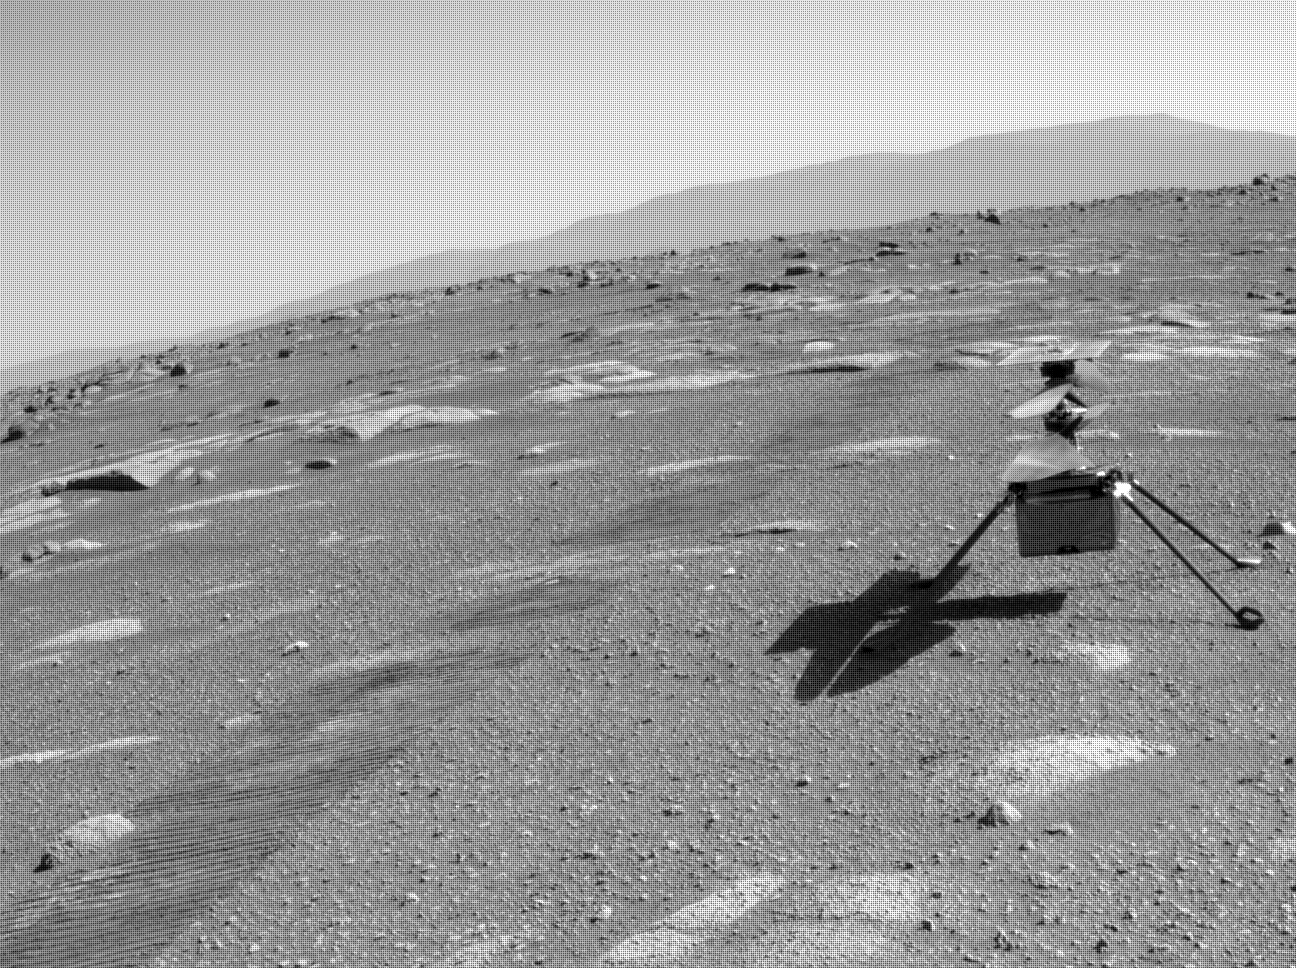 NASA's Mars Perseverance rover acquired this image of the area in back of it using its onboard Rear Right Hazard Avoidance Camera.